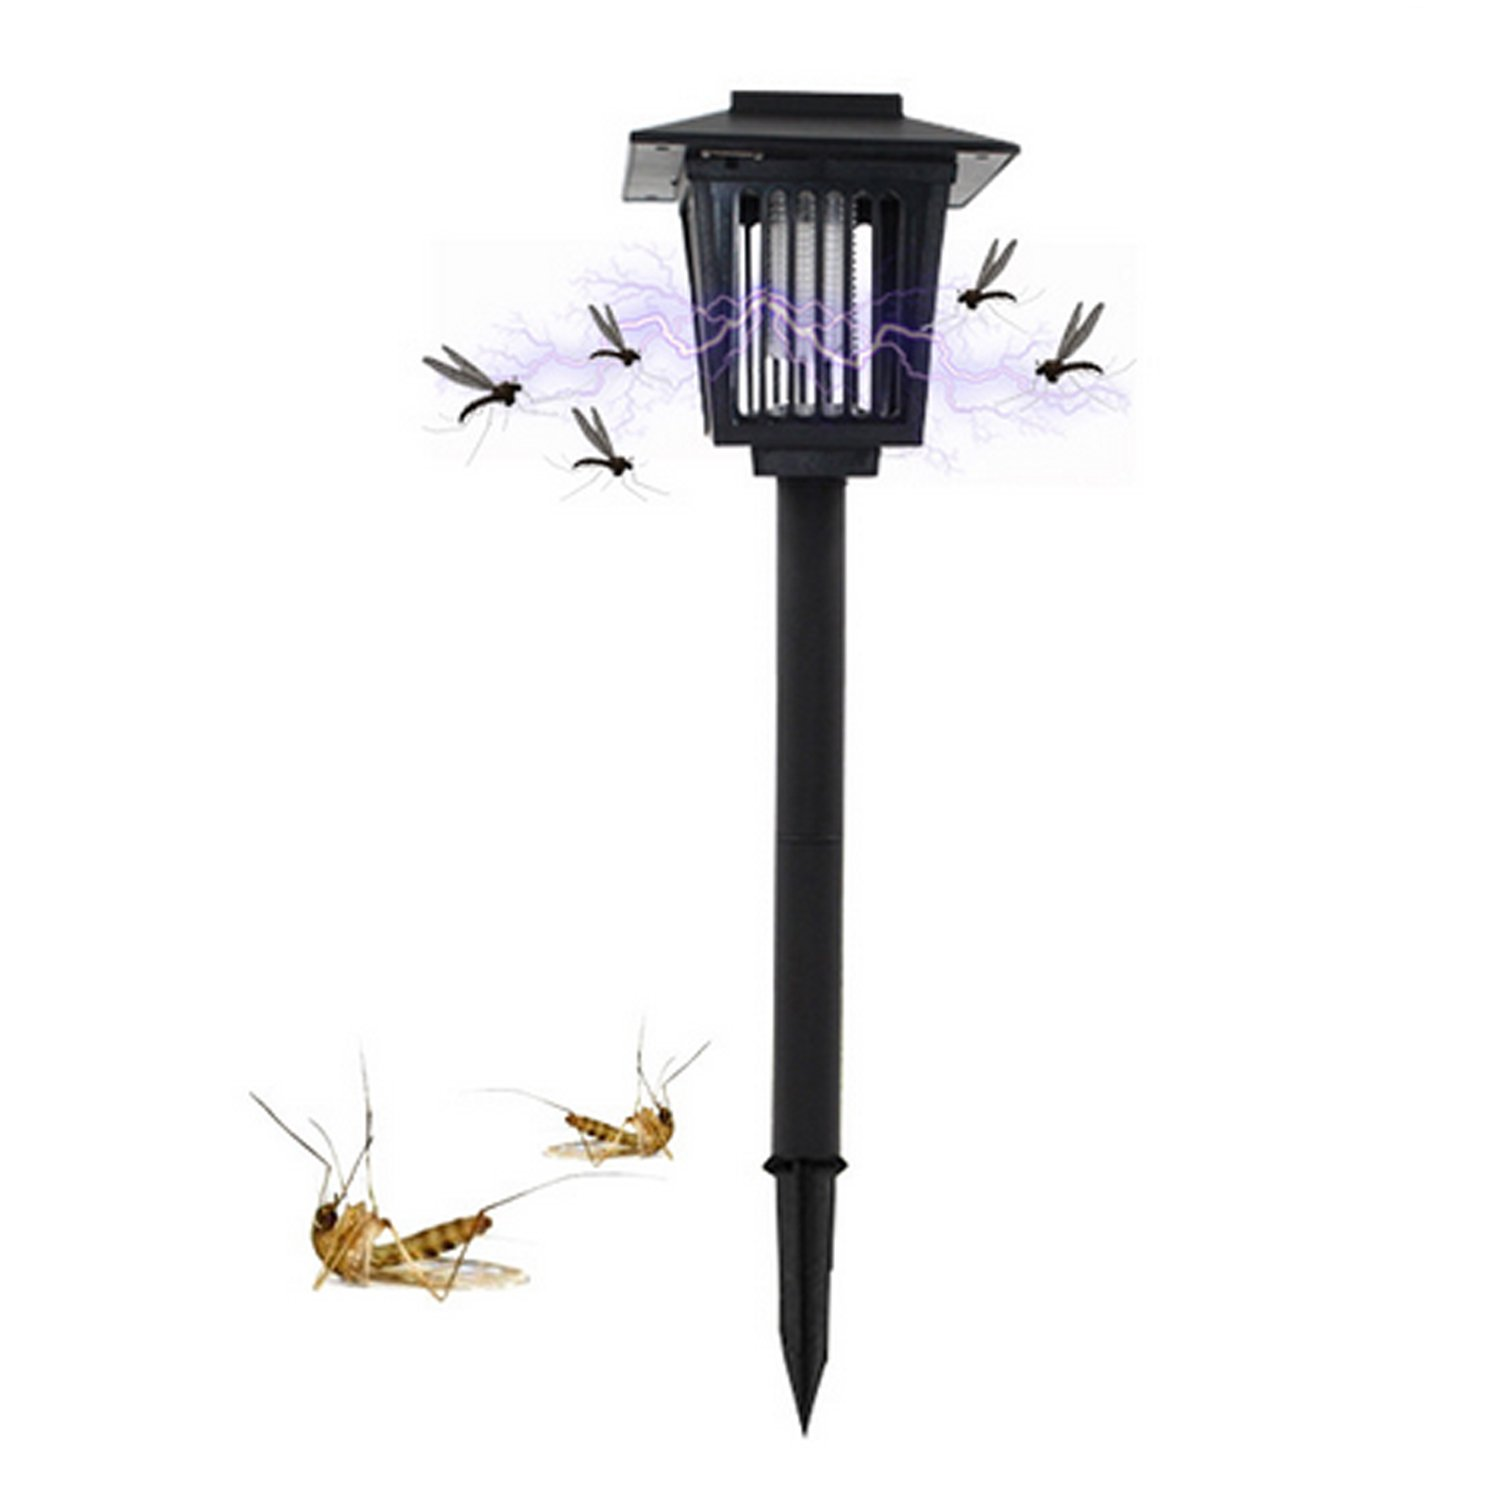 Solar Powered Bug Zapper Light, Solar Mosquito Killer Insect Killer Indoor Outdoor Fly Pest Trap Lamp Portable Garden Lawn Light For Garden, Patio, Outdoor Ground Residential, Commercial and Industri